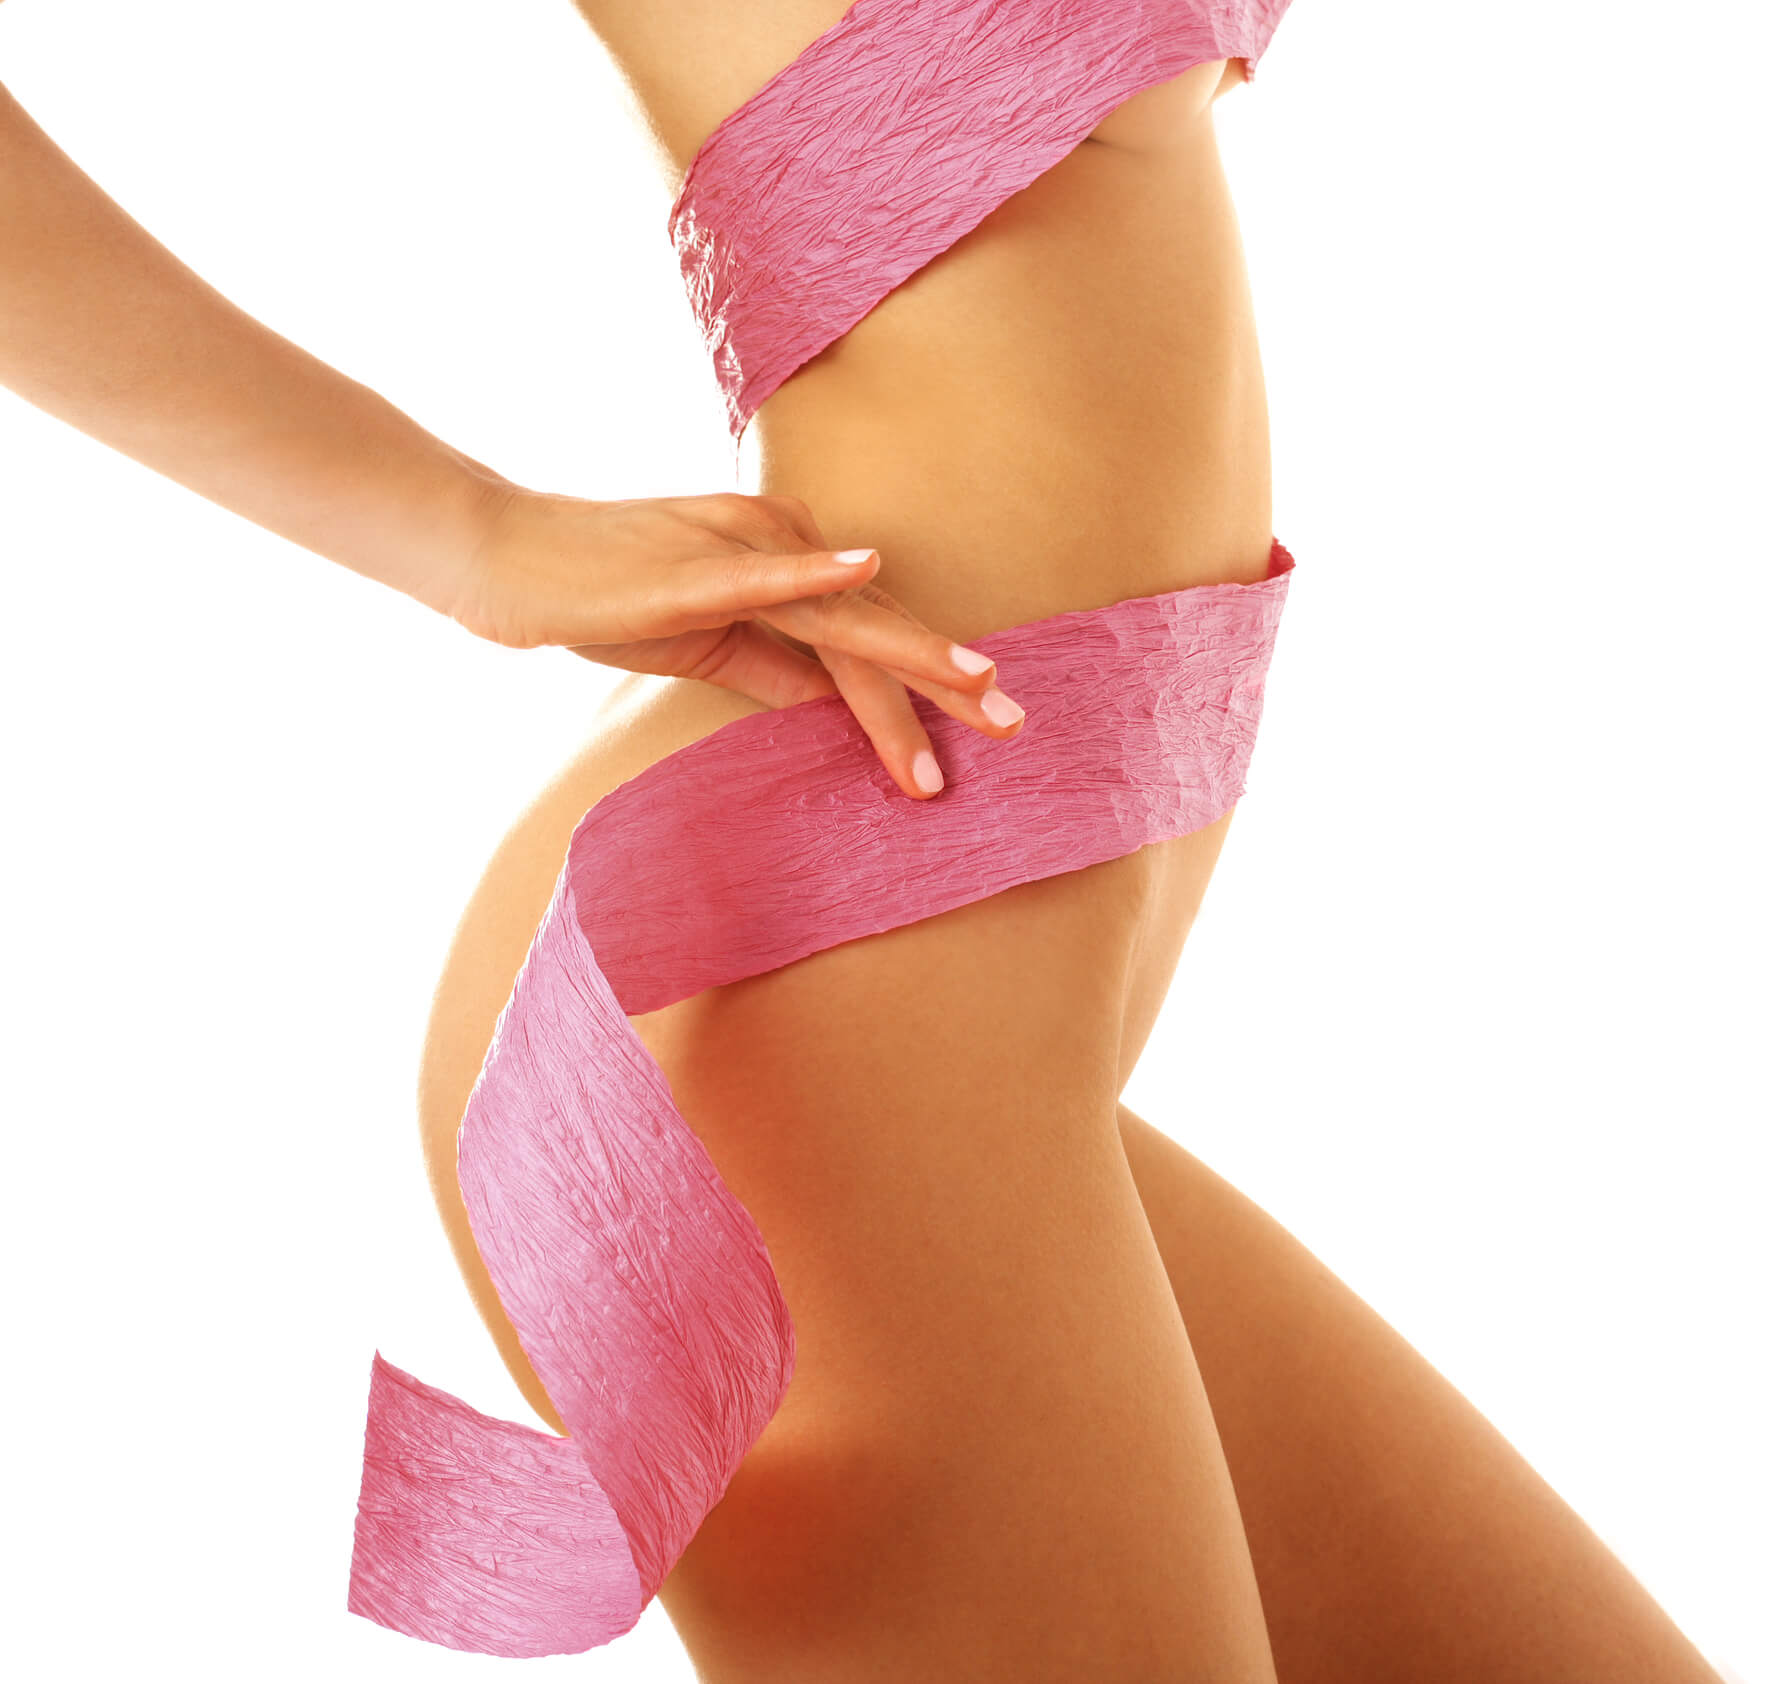 Cryolipolysis - Click here for more info